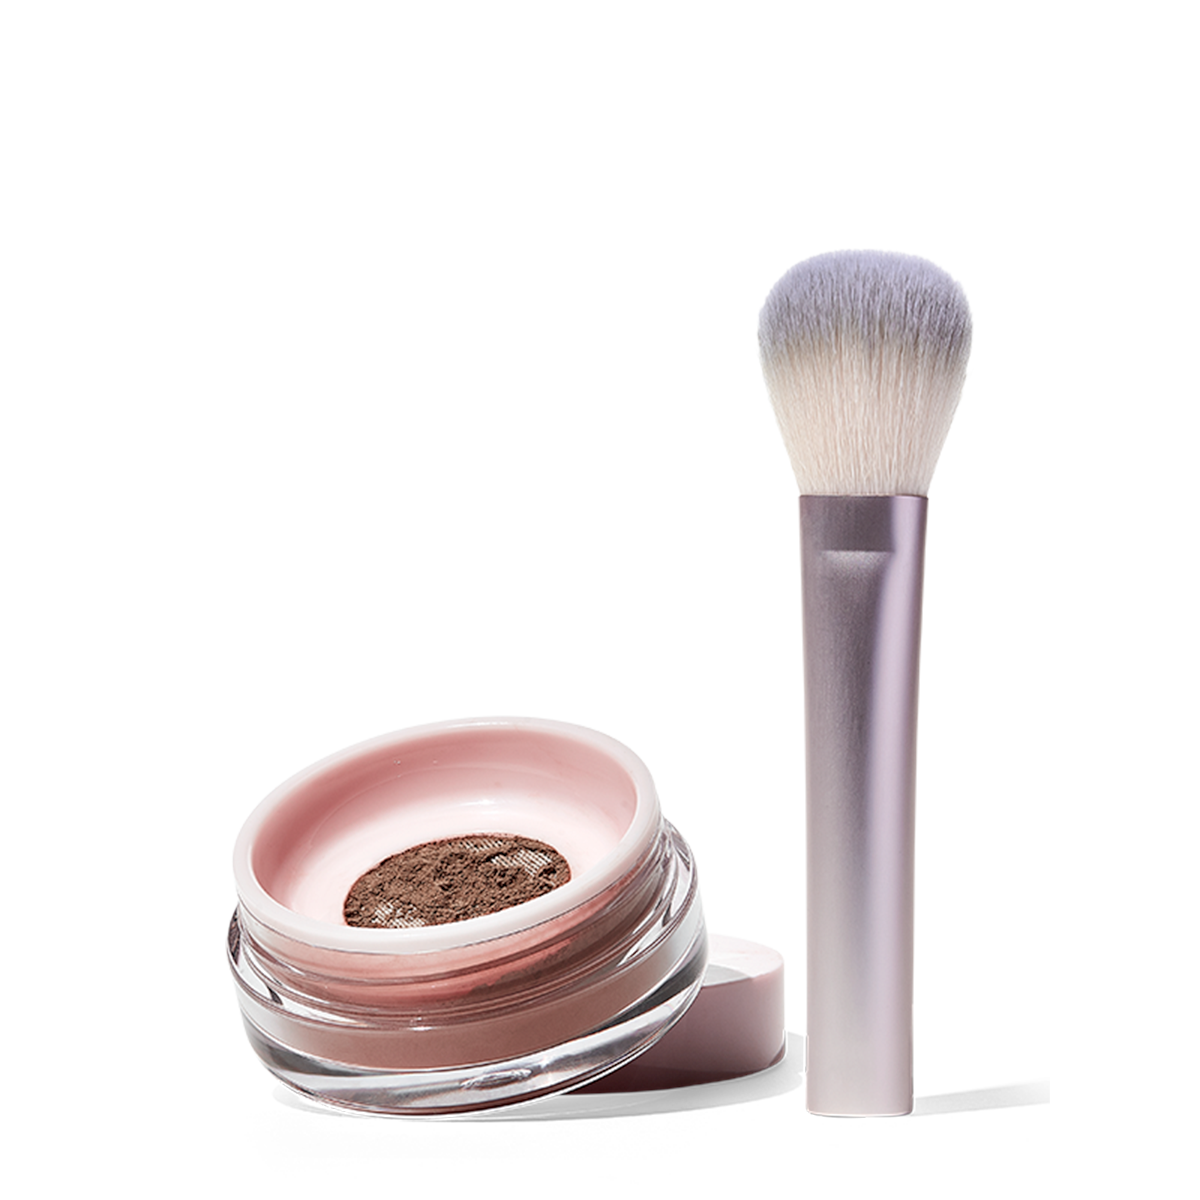 Glossier Wowder Duo, Wowder plus the Wowder Brush, Powder that sets makeup, cuts shine and blurs the appearance of pores